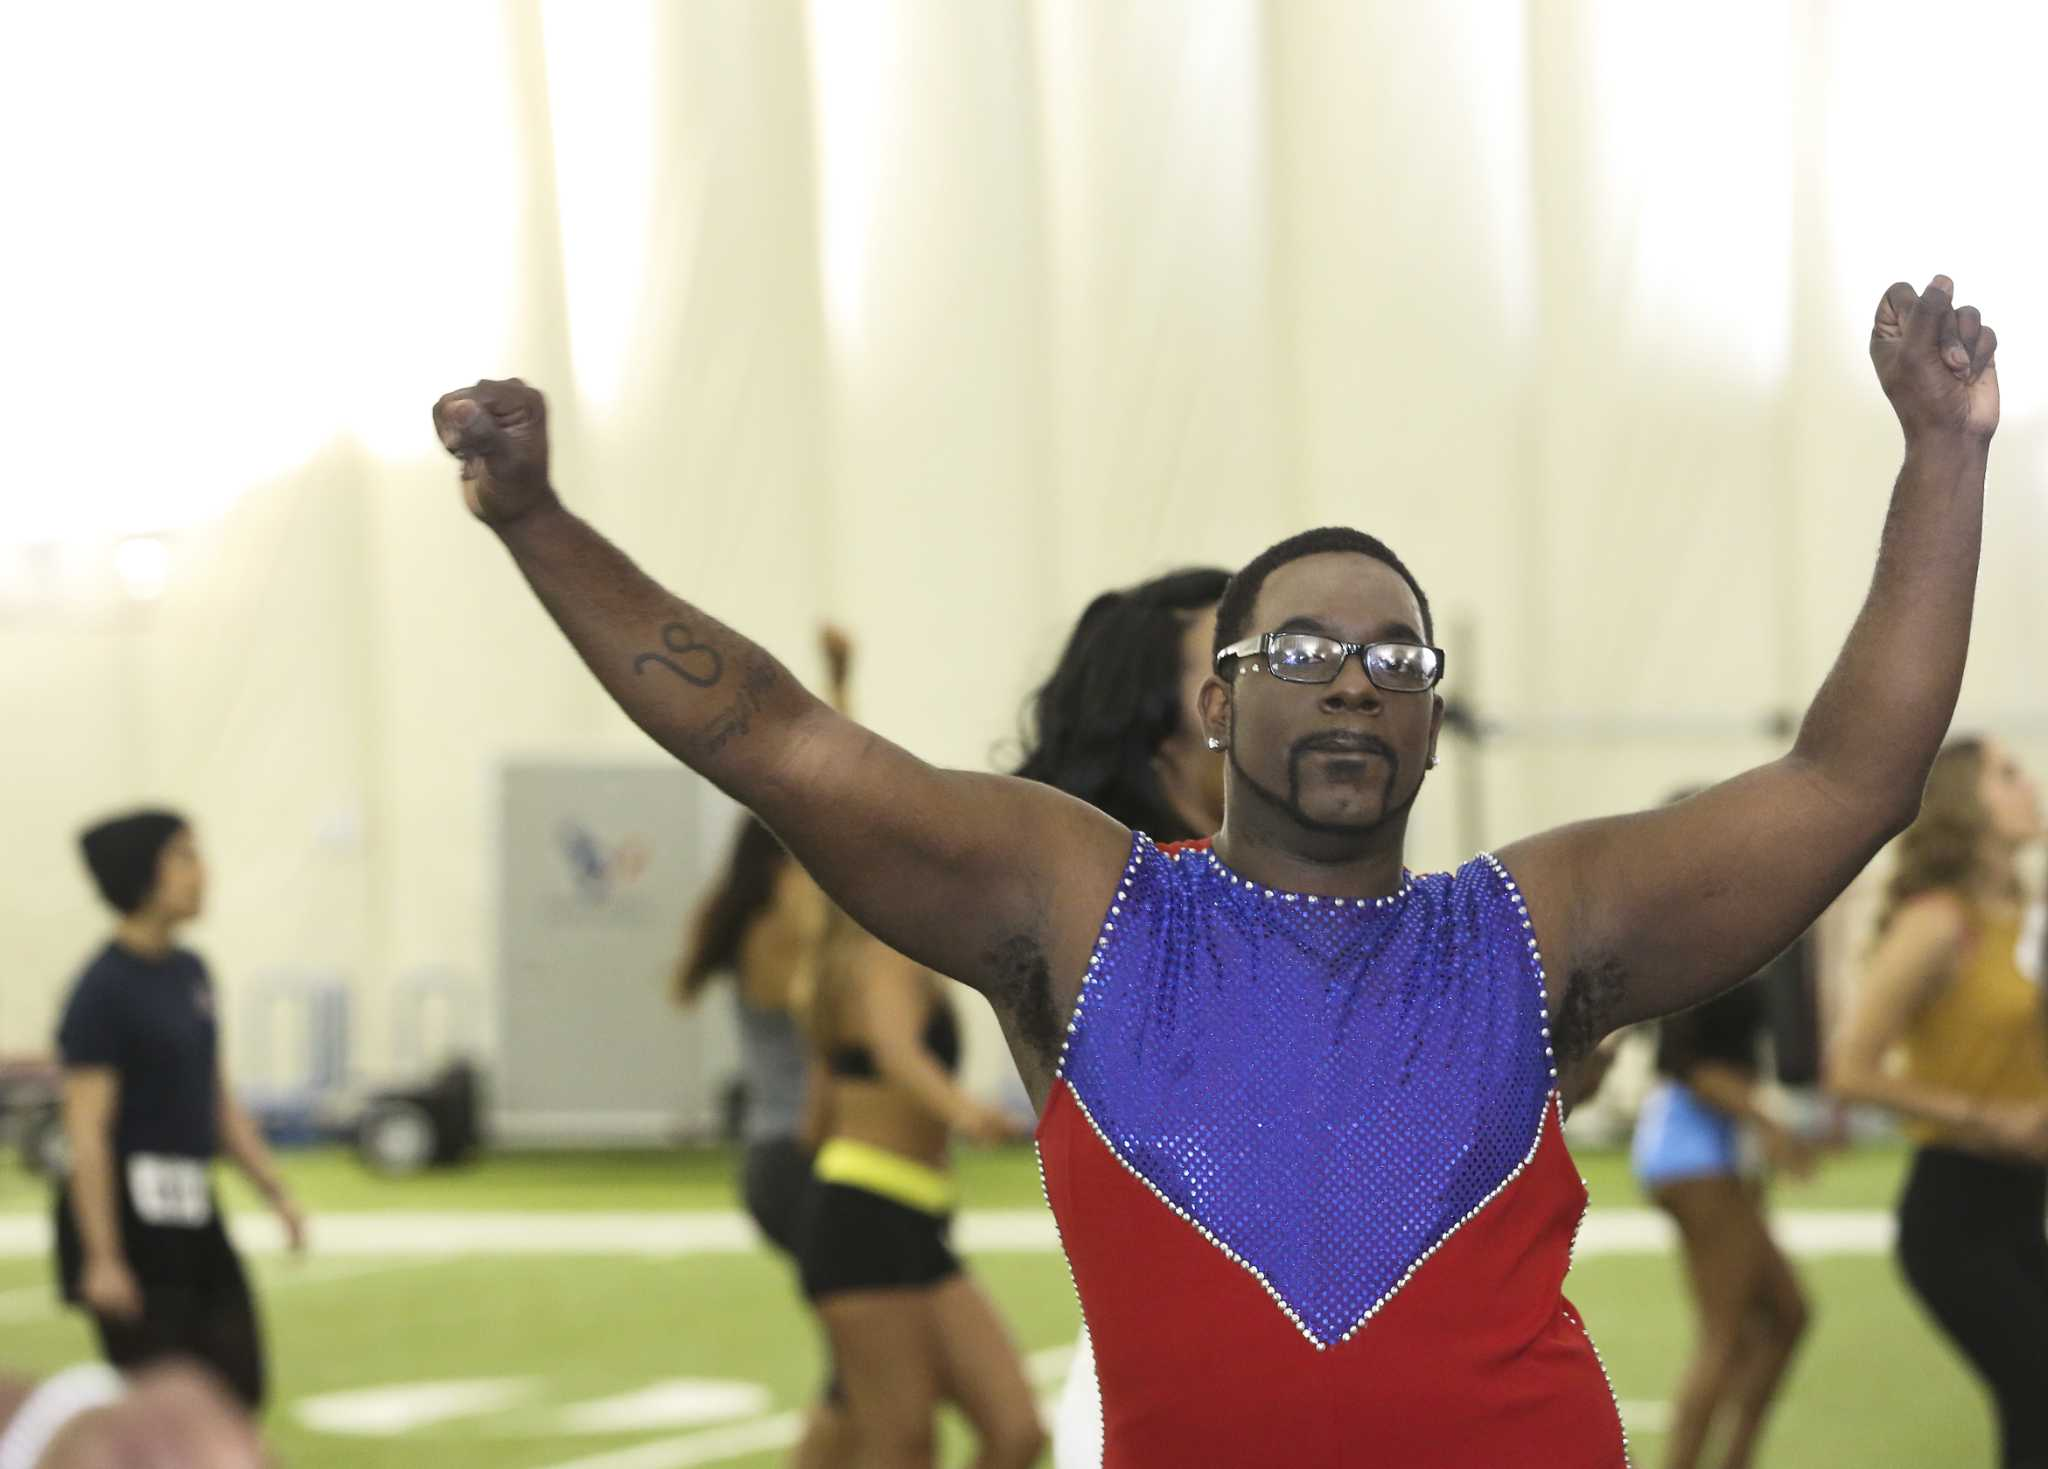 7798d9dc The man who tried out to be a Texans cheerleader - HoustonChronicle.com